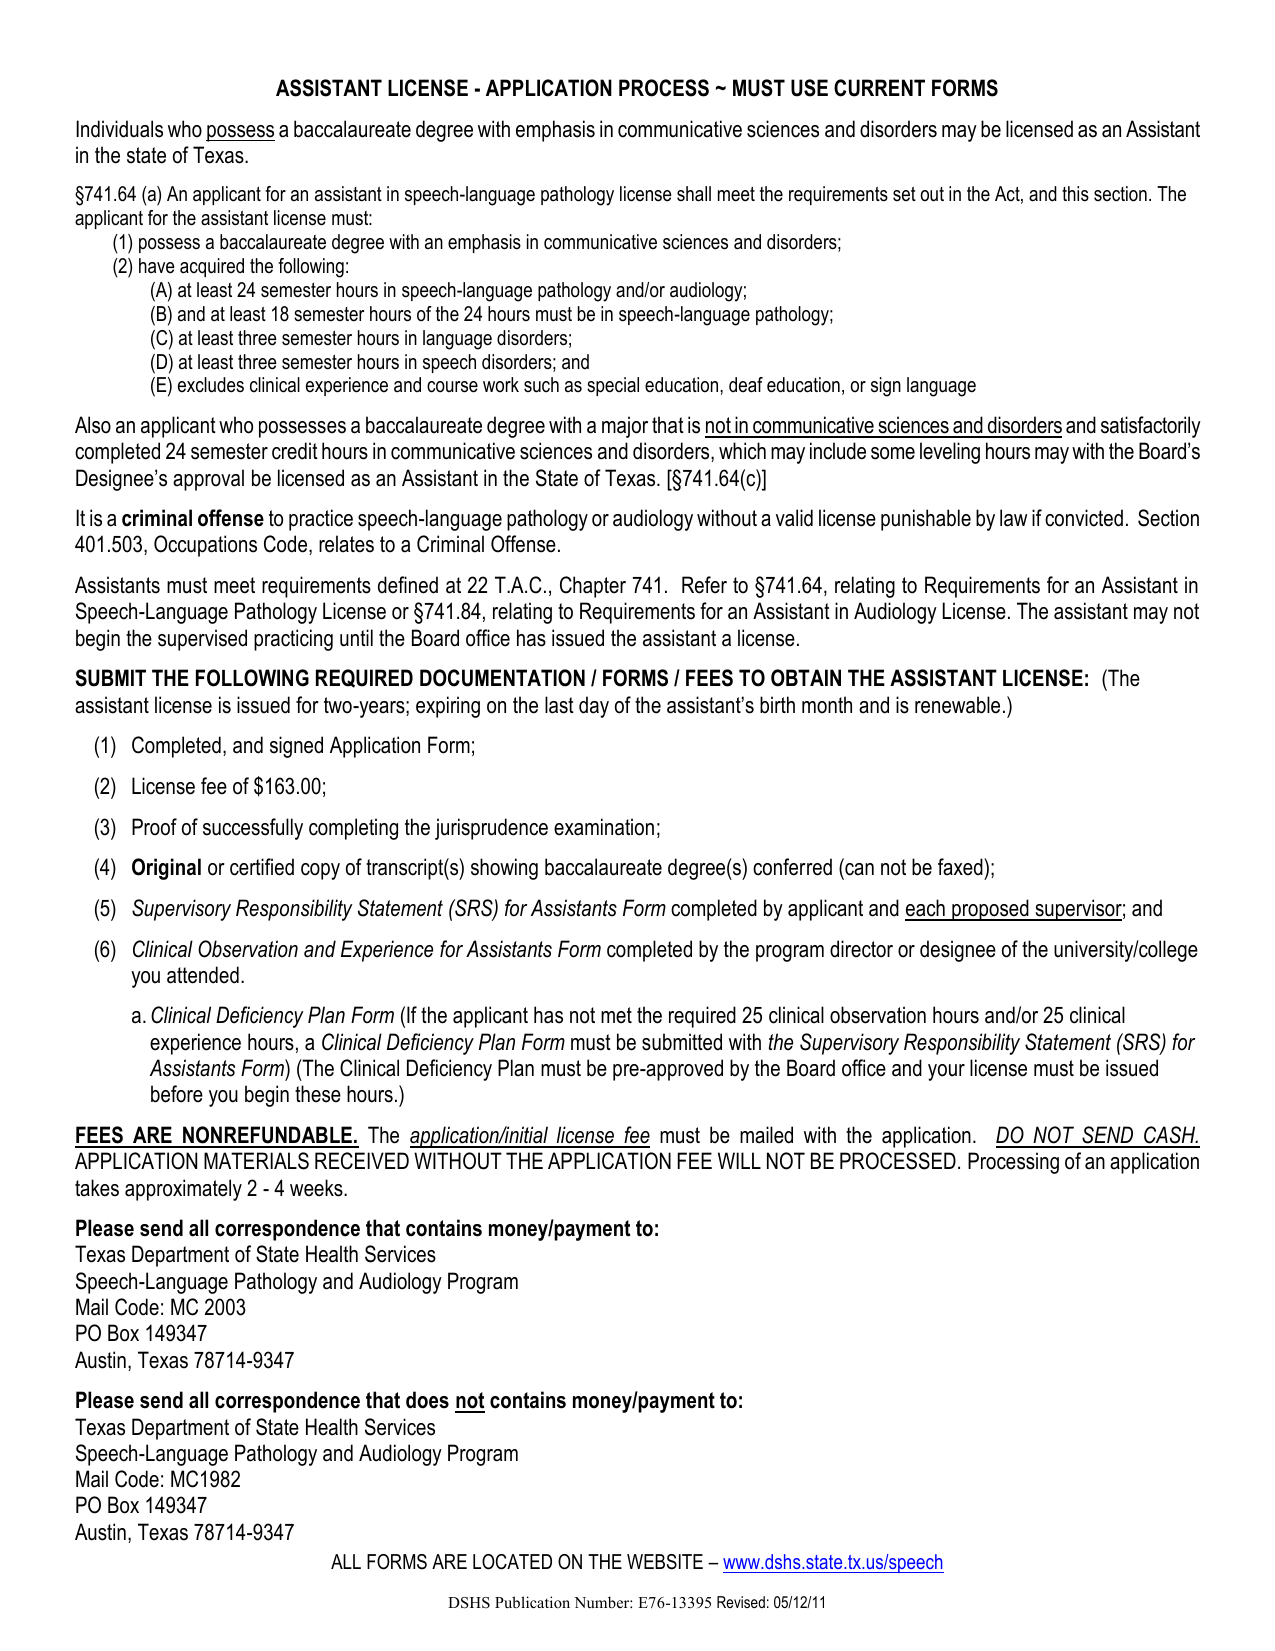 Assistant License Application Process